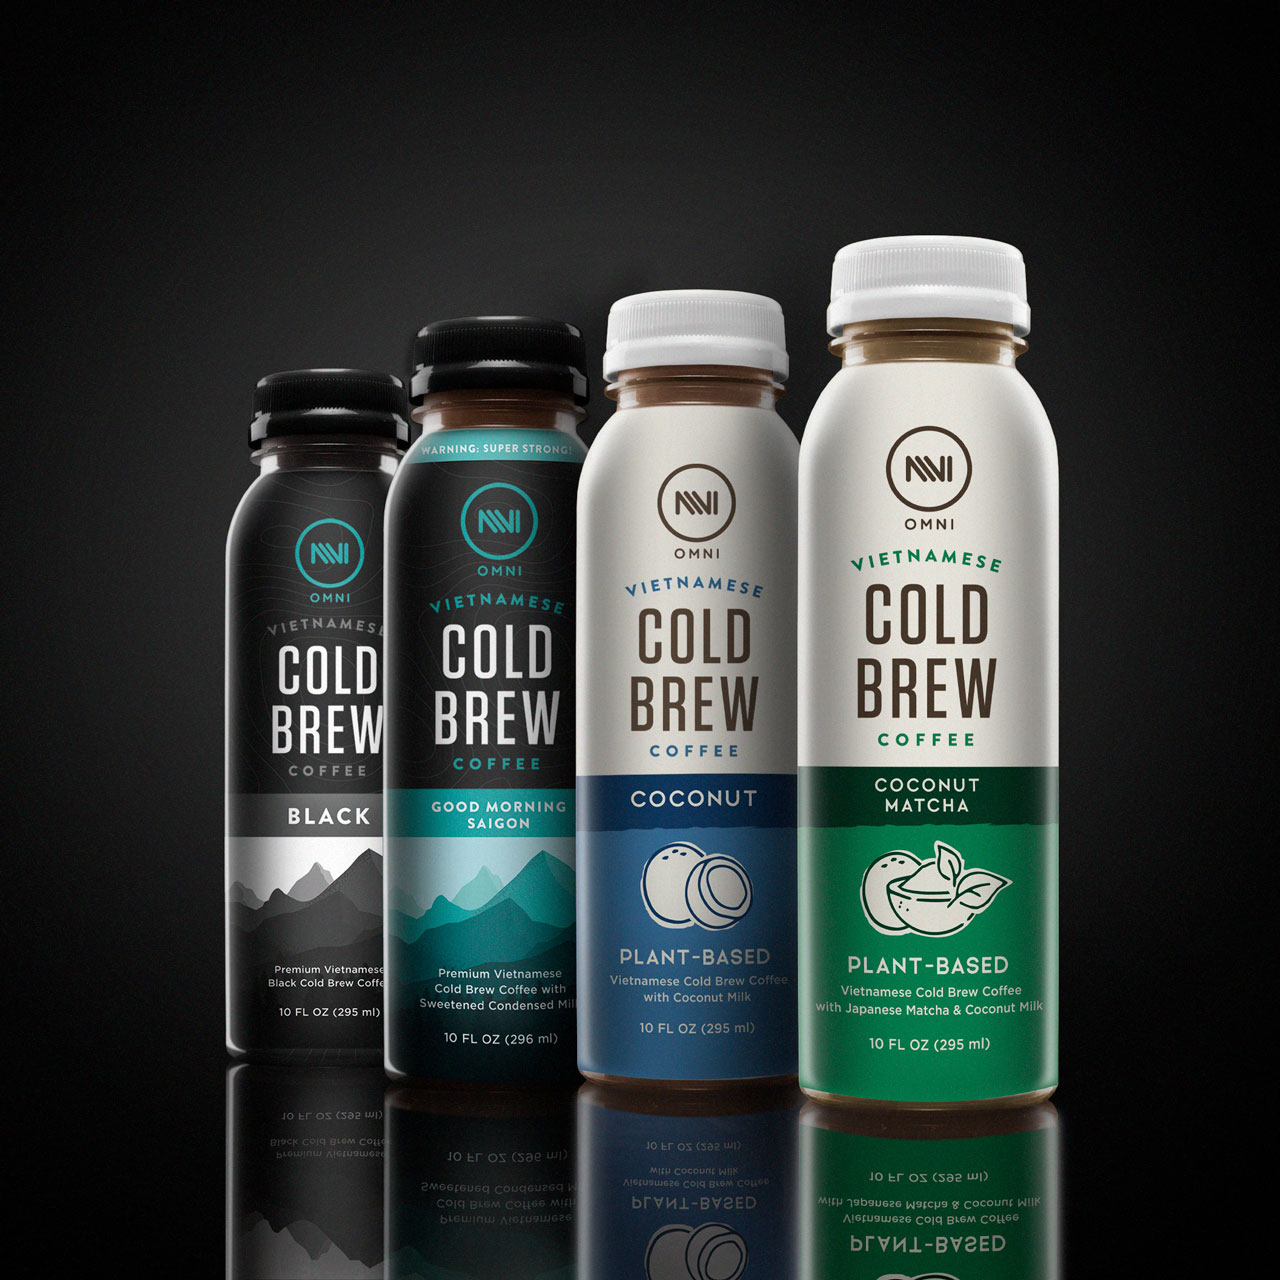 The world's first authentic Vietnamese cold brew coffee